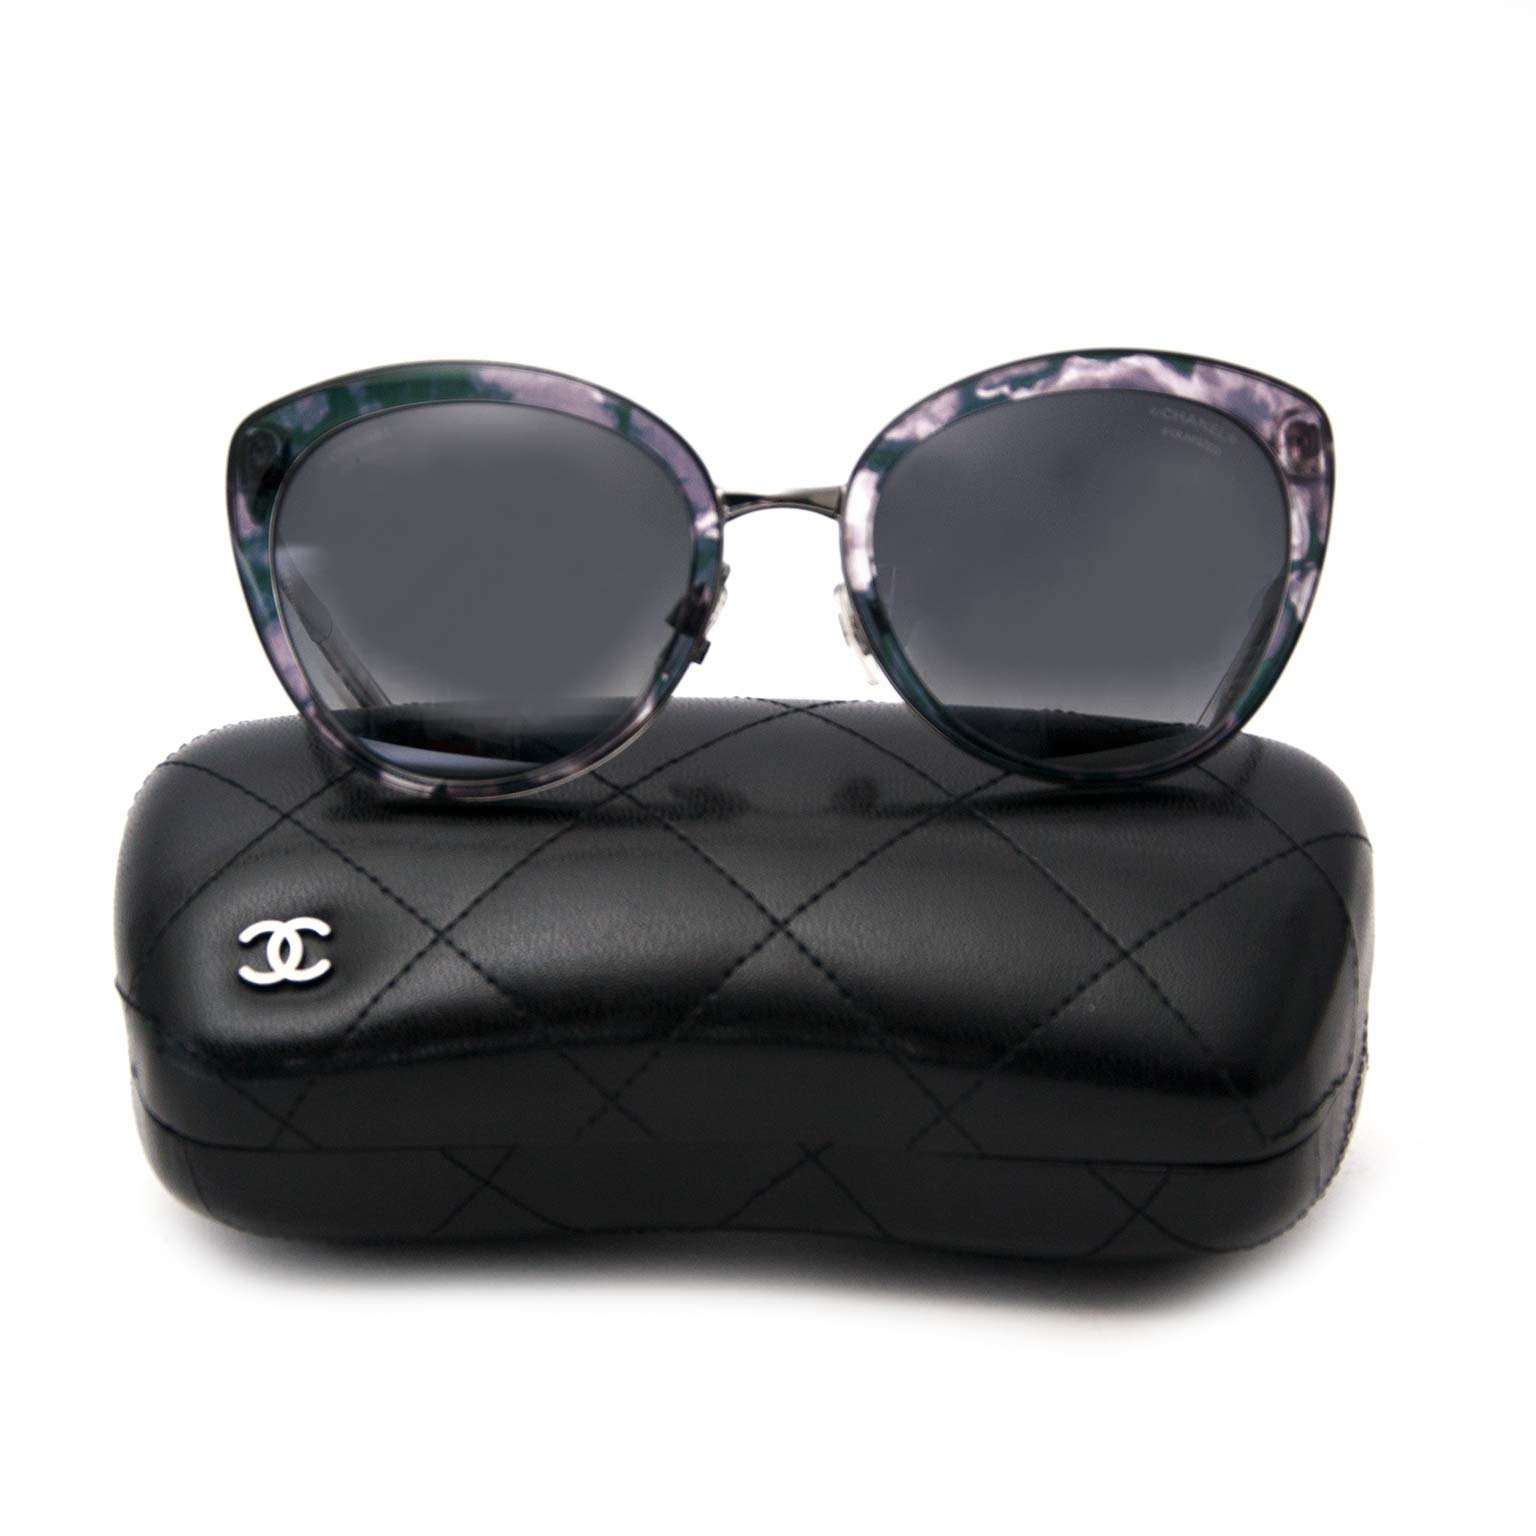 Chanel Butterfly Summer Polarized Sunglasses Buy authentic designer Chanel secondhand sunglasses at Labellov at the best price. Safe and secure shopping. Koop tweedehands authentieke Chanel zonnebrillen bij designer webwinkel labellov.